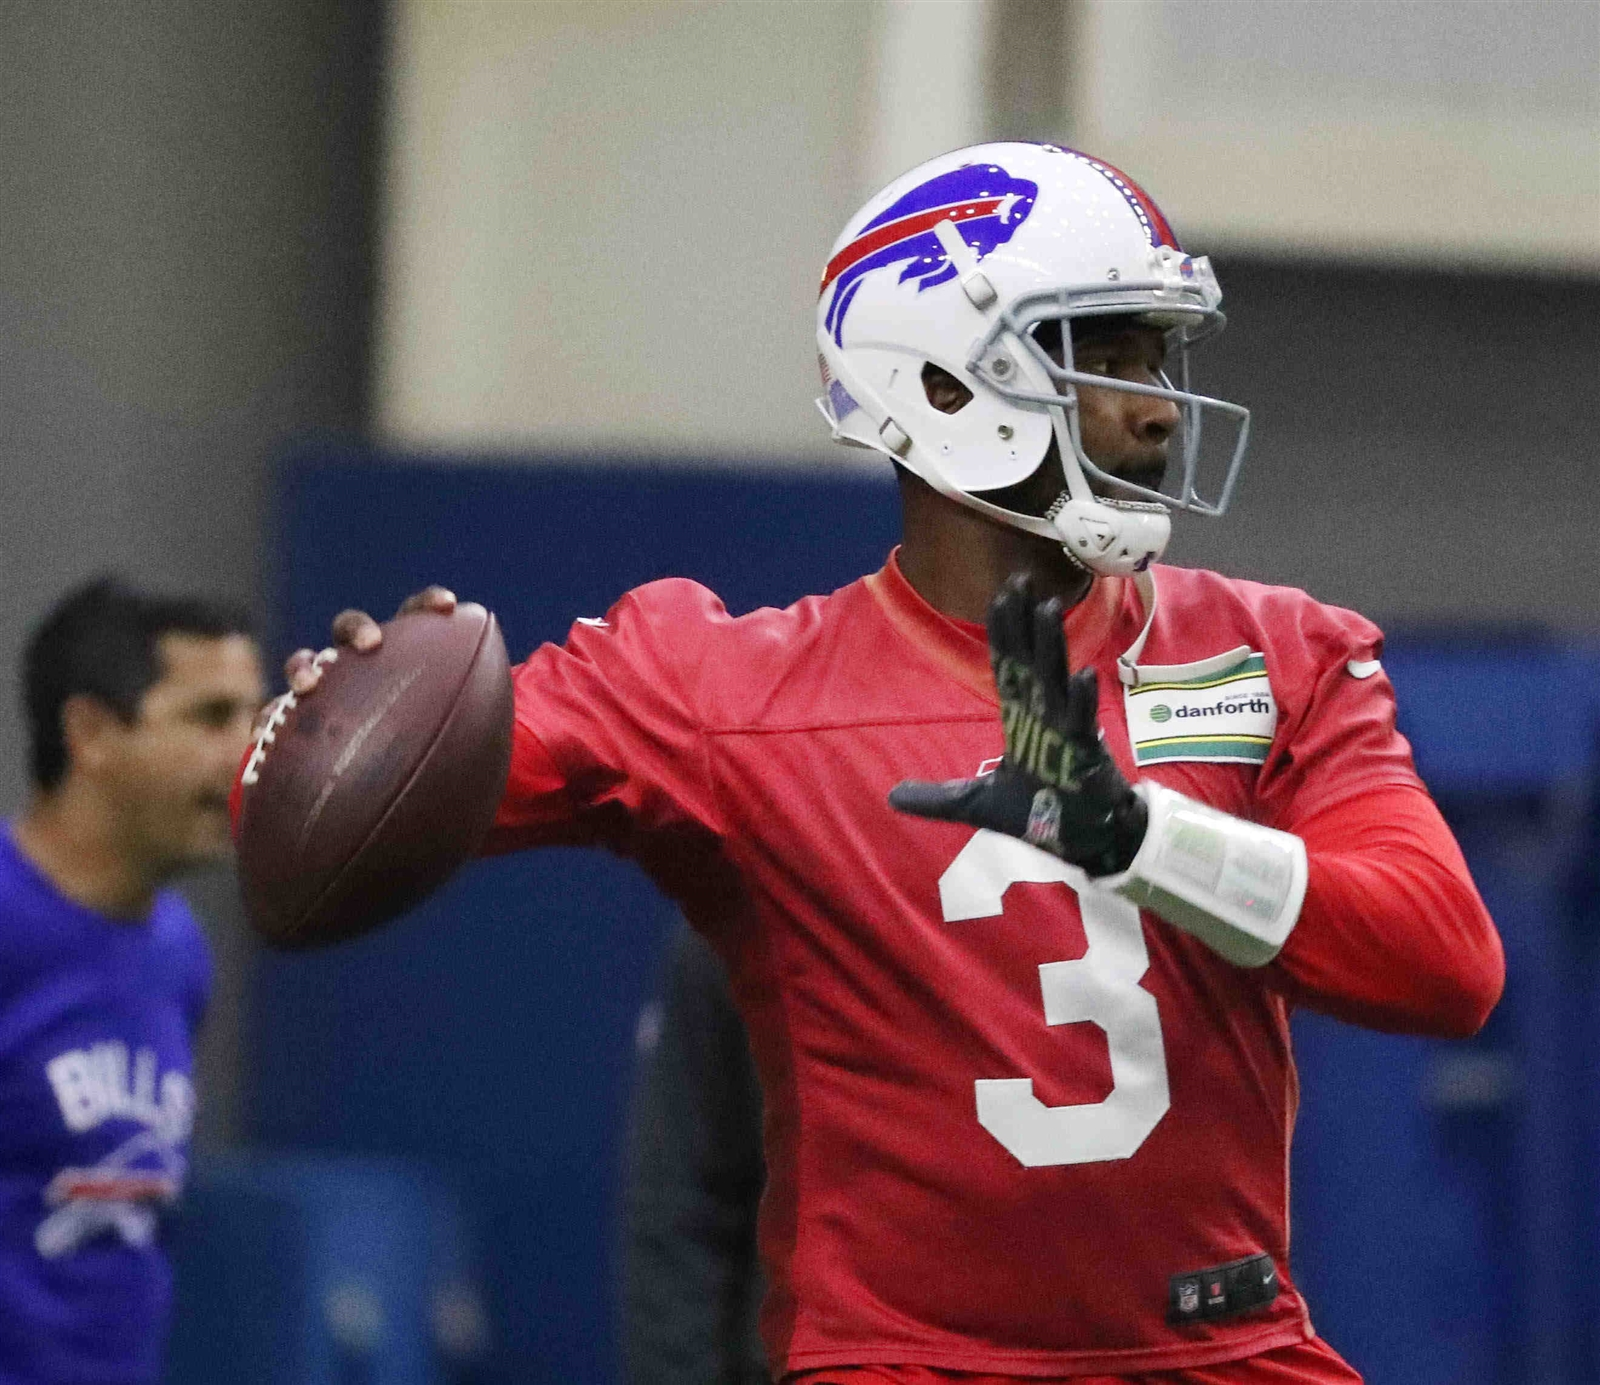 Bills quarterback EJ Manuel hasn't lived up to expectations as a first-round draft pick. (James P. McCoy/Buffalo News)